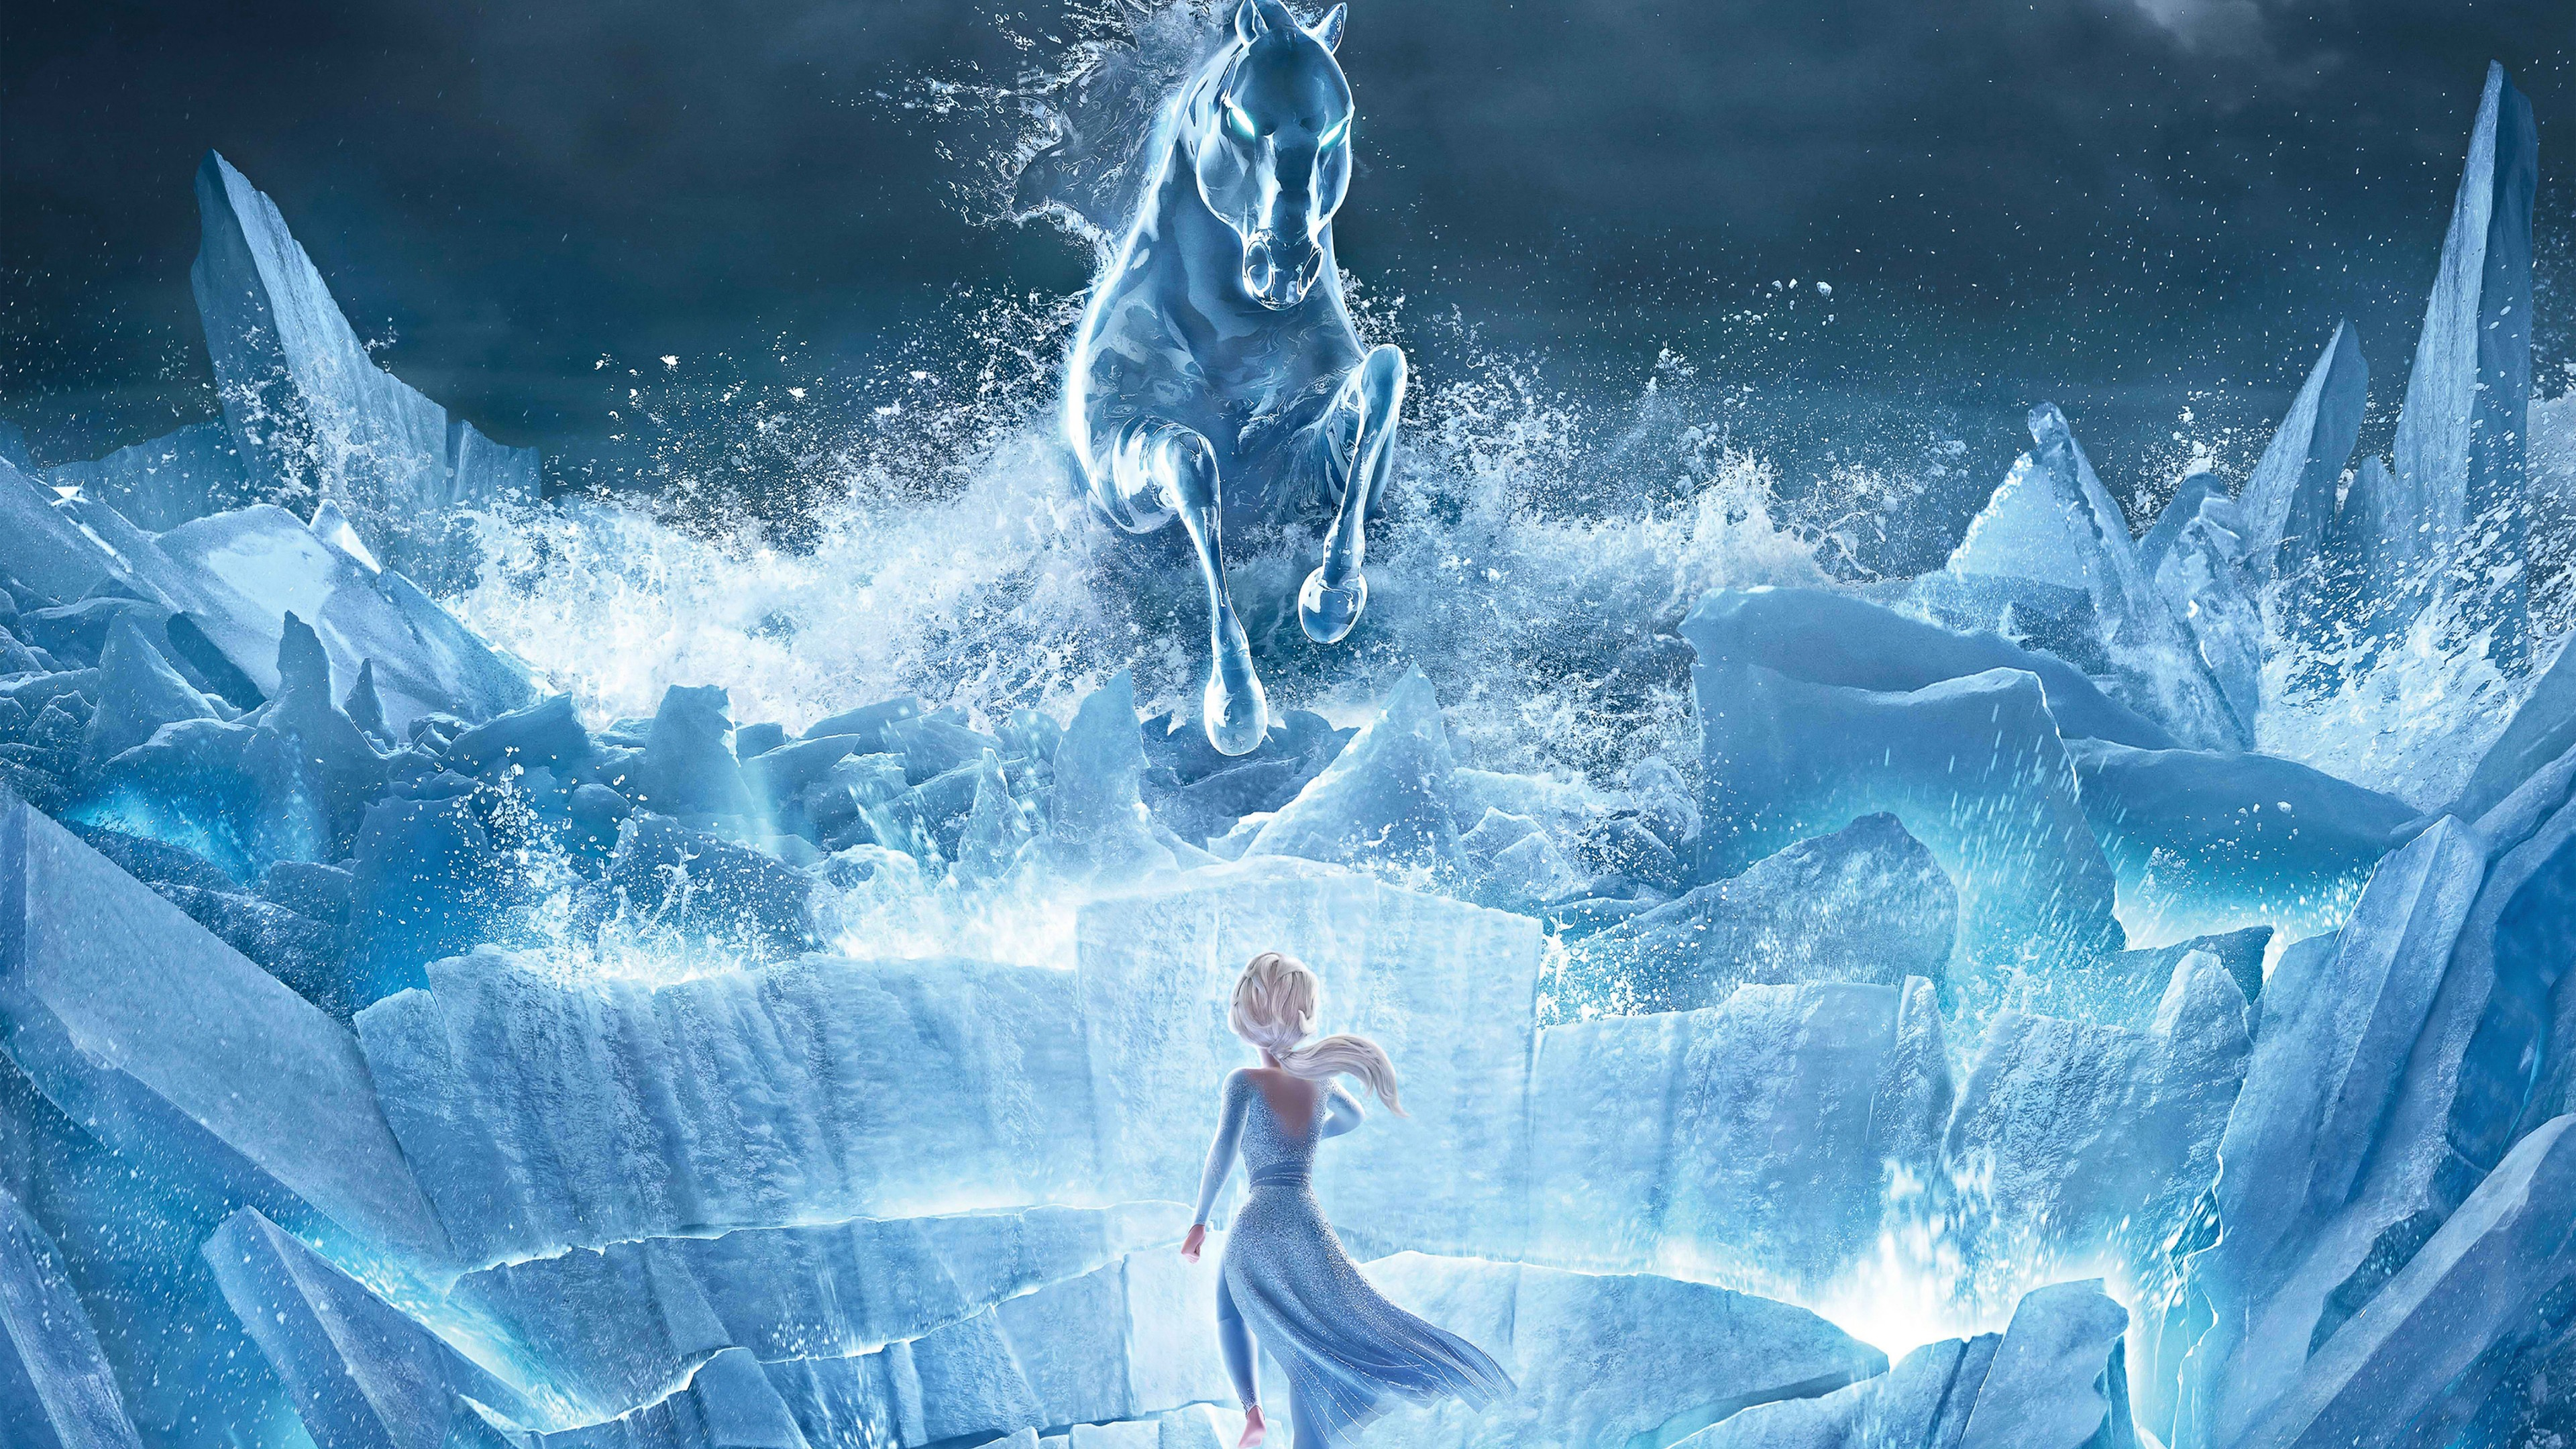 Frozen 2 Queen Elsa 4K Resolution Size 3840x2160 Desktop